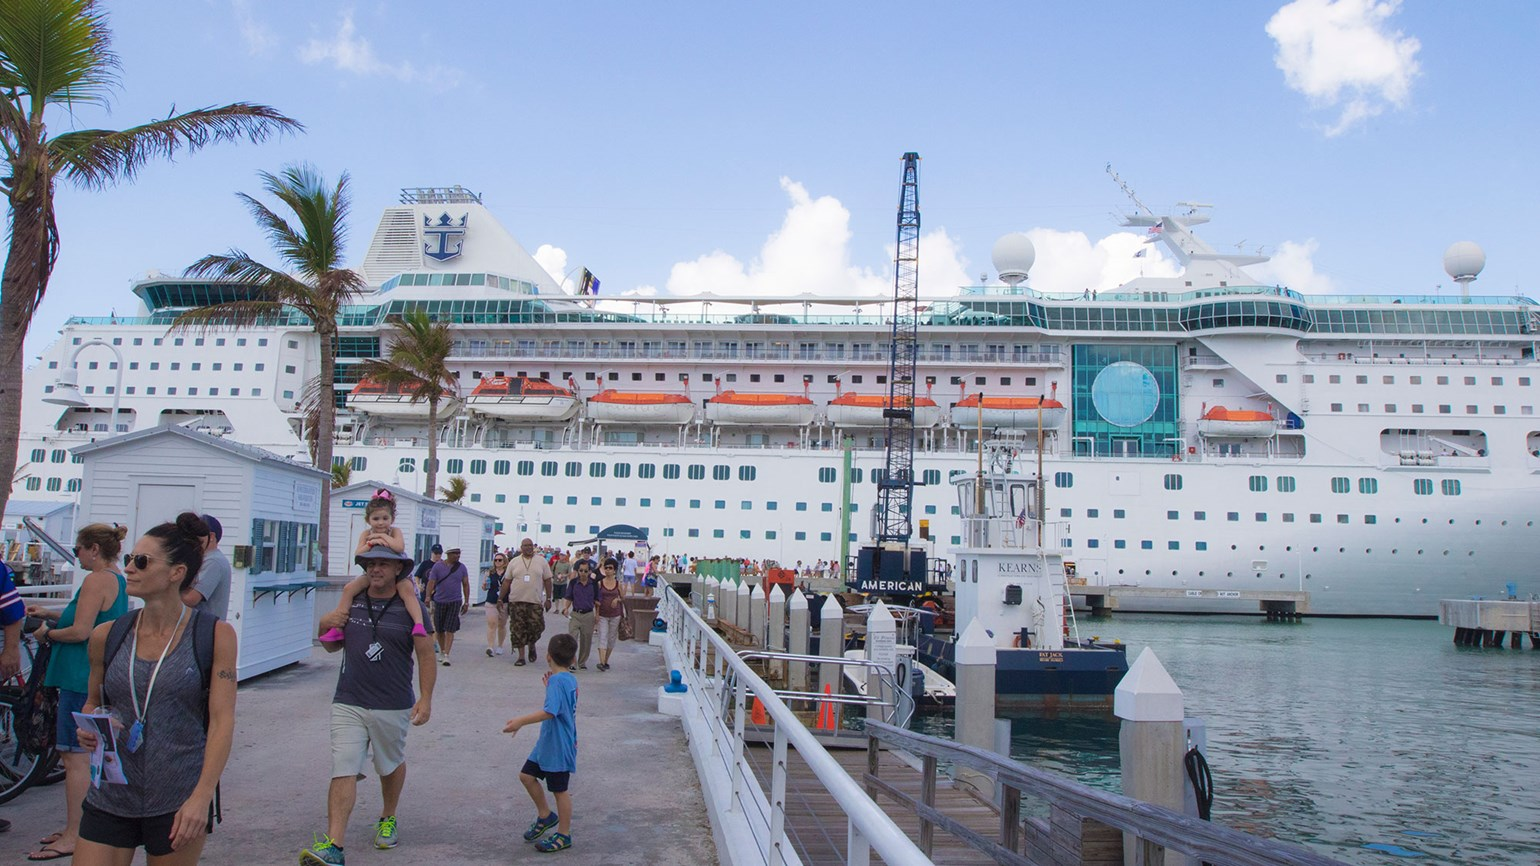 Ports from Key West to Alaska to benefit from Cuba cruise ban